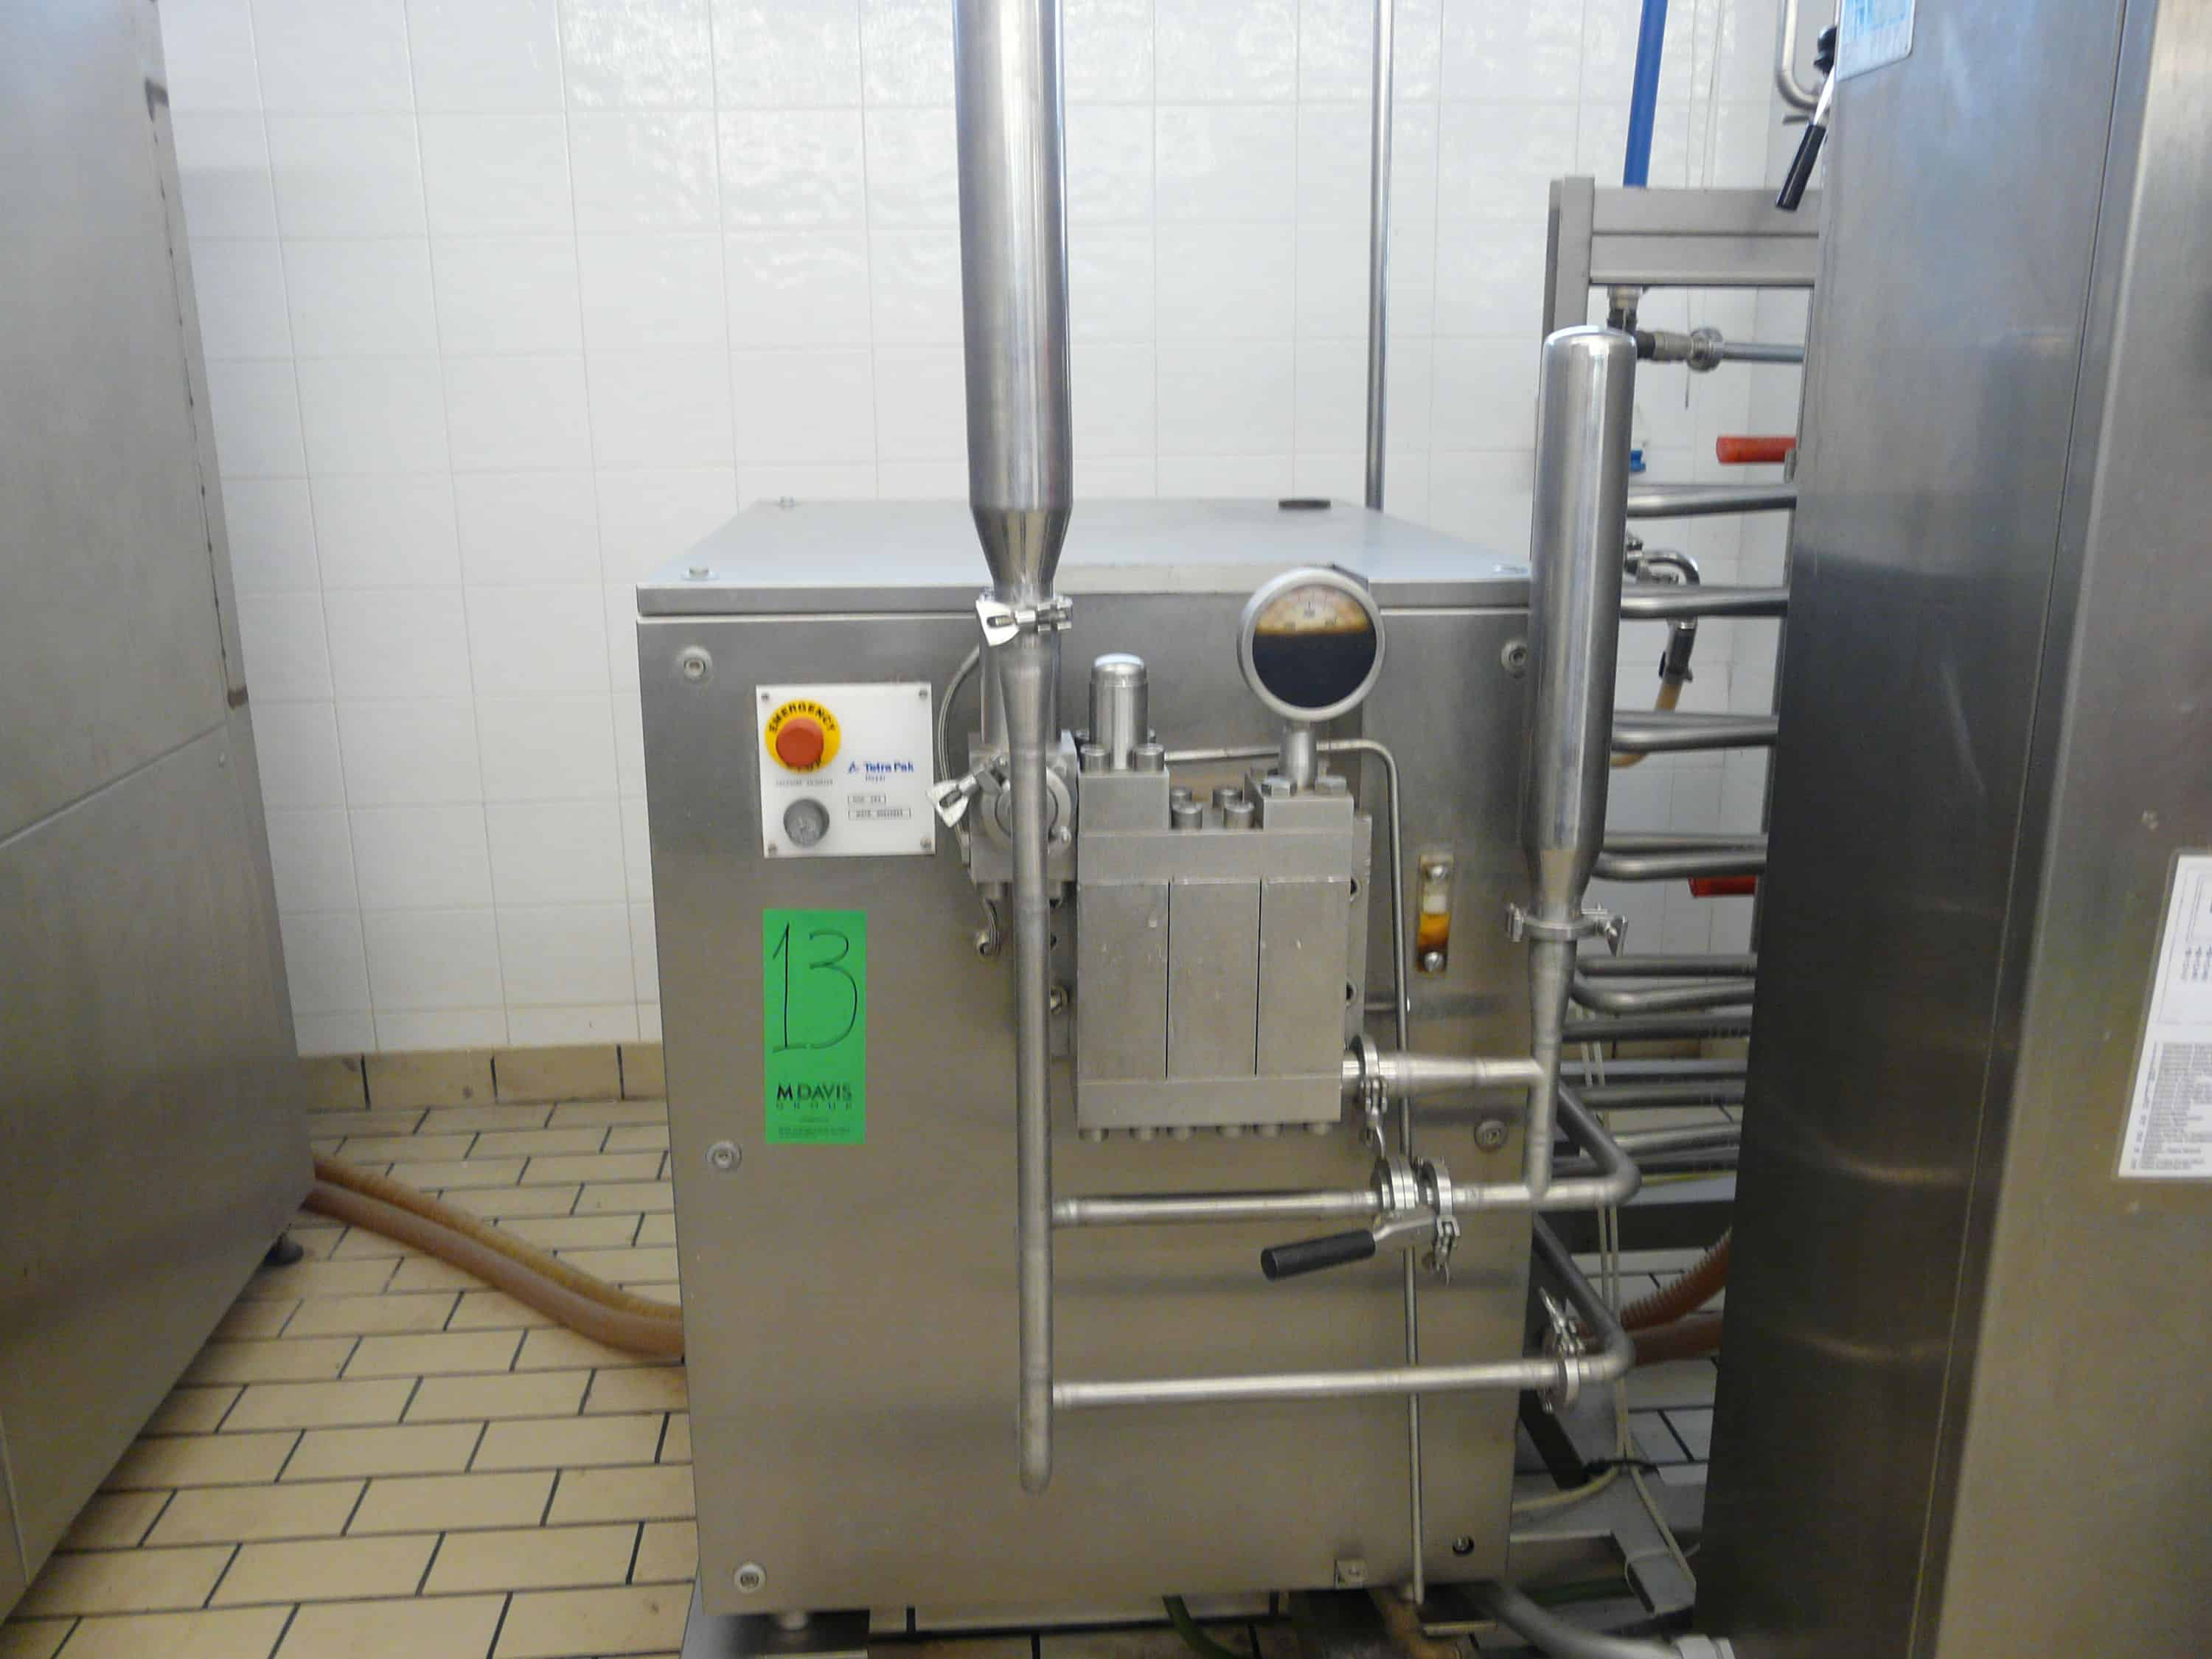 TETRA PAK HOYER HTST SYSTEM, 1200 Pasteurizer for Ice Cream, Contains 2 x Tanks with Agitators,1 Plate Heat Exchanger ALFA LAVAL Model: CLIP 6-RM, Homogenizer Tetra Pak Model: XR3 with Manual Book, 2 Product Pumps, 1 Water Pump, 1 Pump for Feeding the Material Through a Cone Type Pipe, Control Panel, 1 GAS Boiler Make: SIME, 1 Tank for Returning the Mixture, It is on Two Stainless Steel Pallets Dimensions: 520x160x20 and 50x160x20. Y.O.M.: 2001